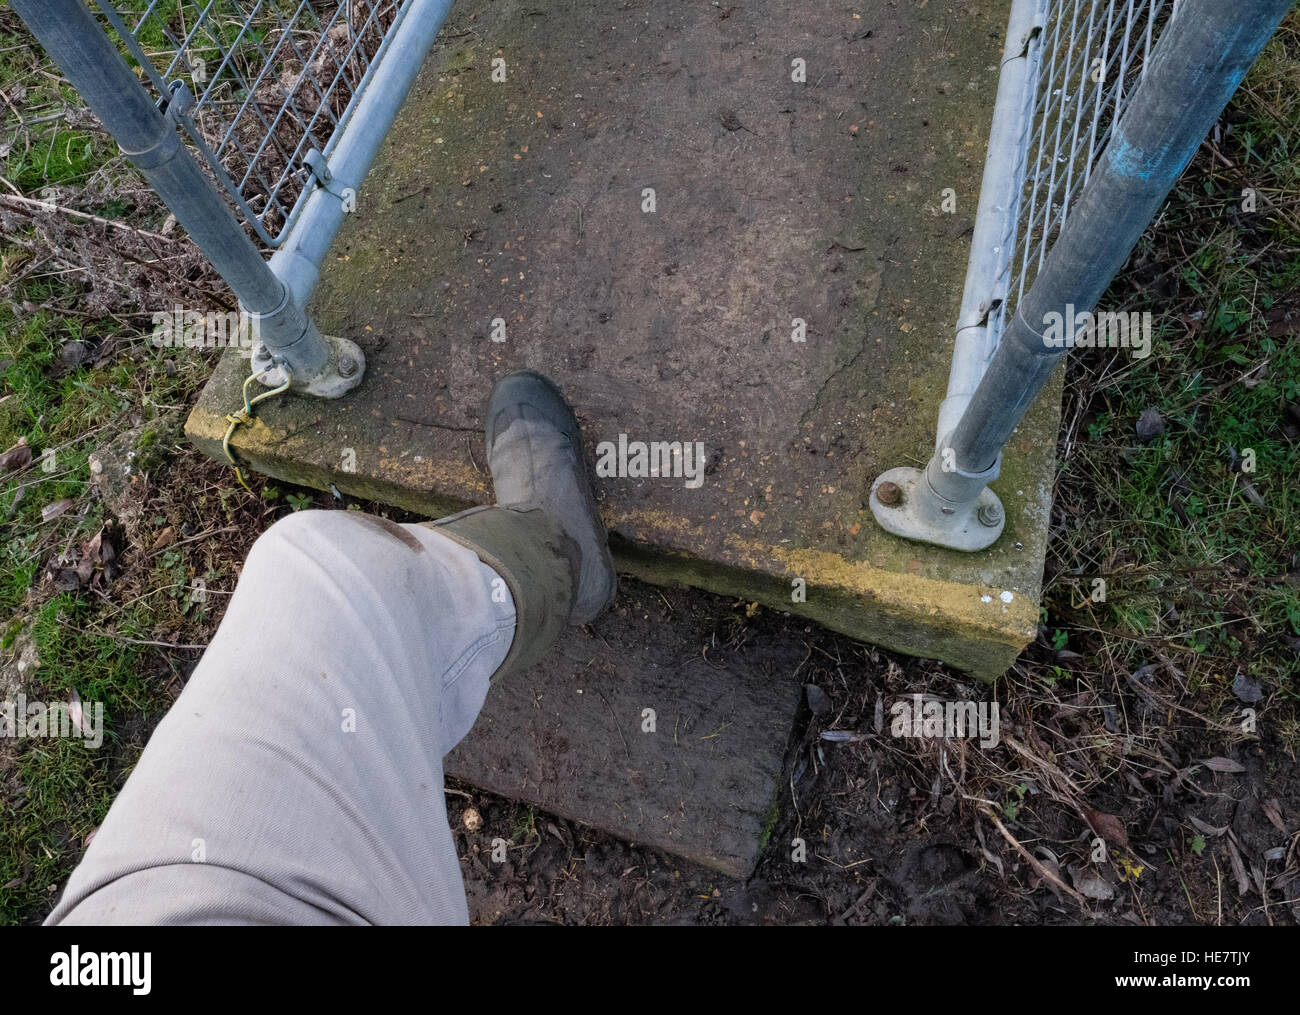 Field walker about to step on a slippery concrete footbridge while holding onto the metal handrails. - Stock Image